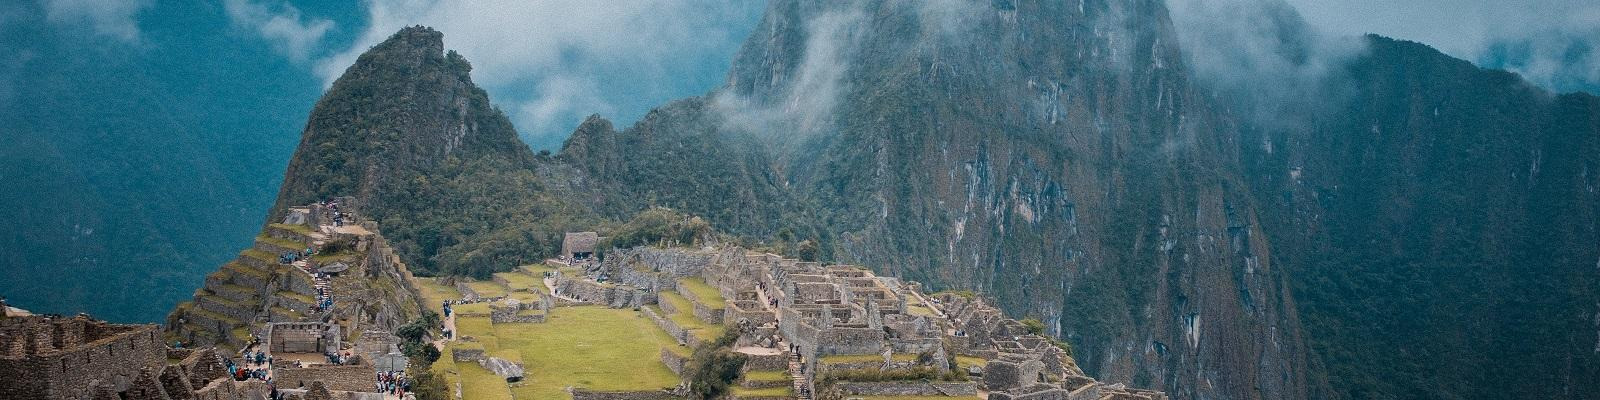 Machu Picchu as seen from above on a moody day